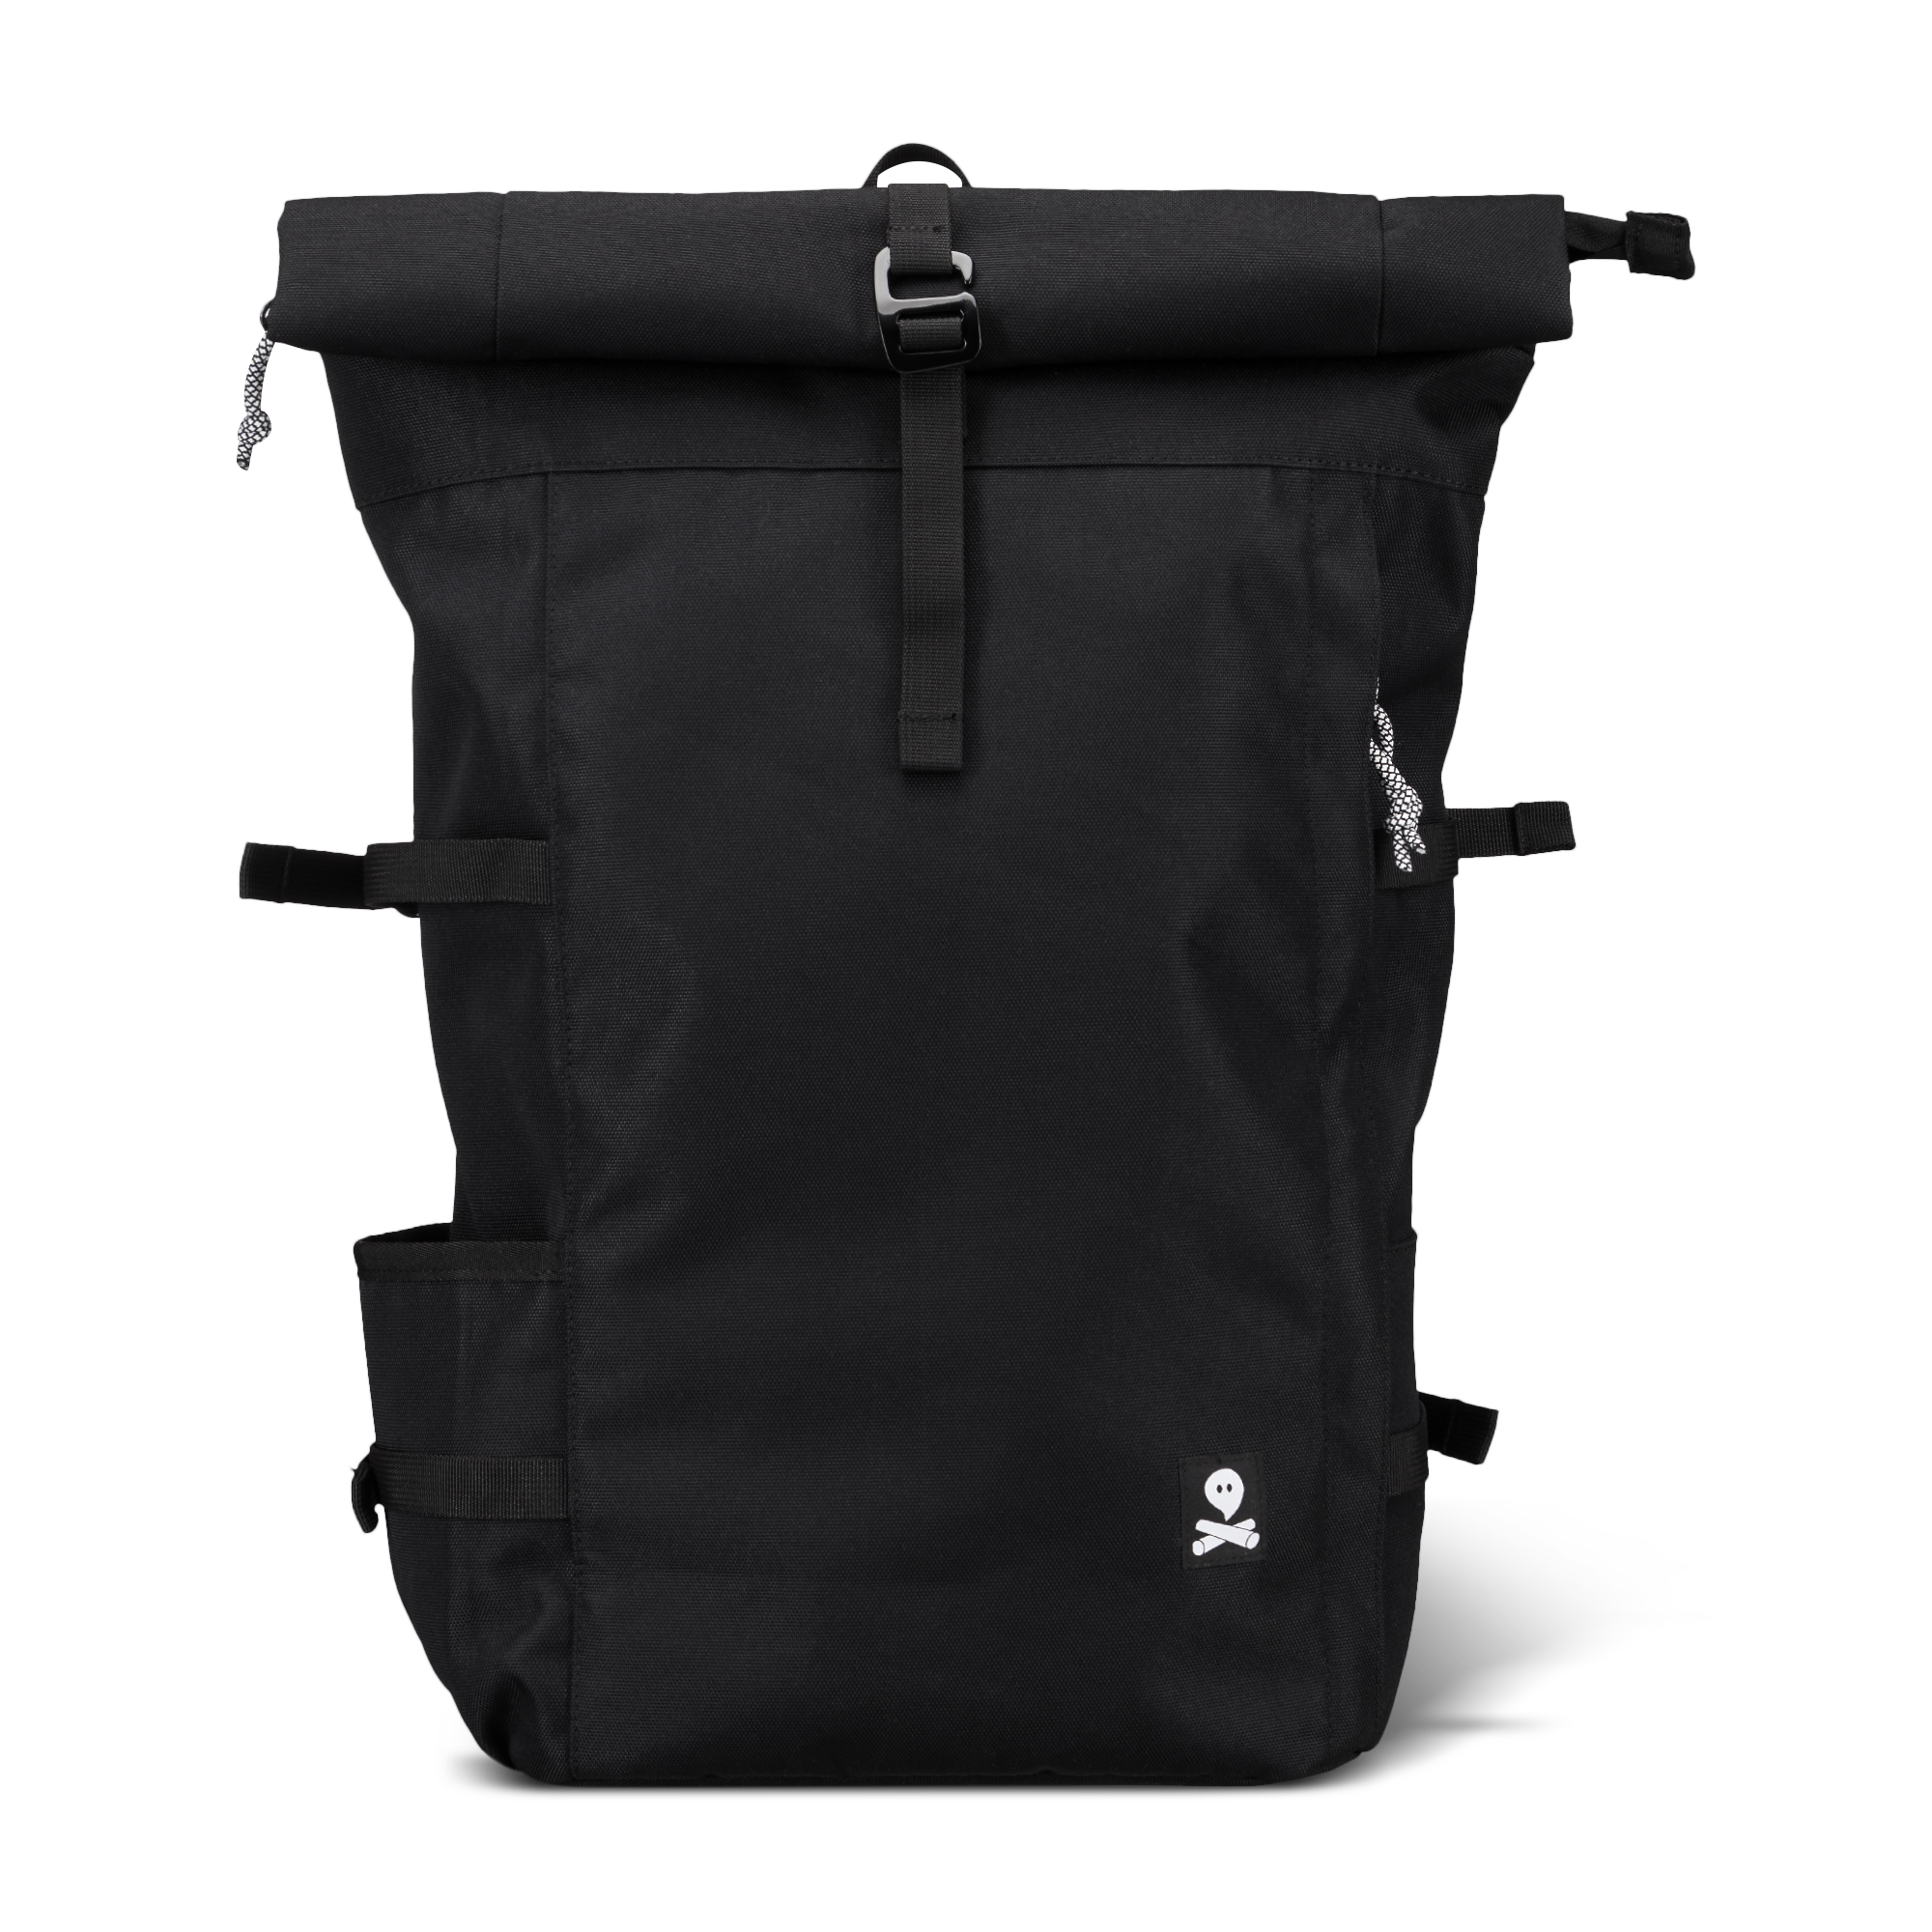 Backpack product photography